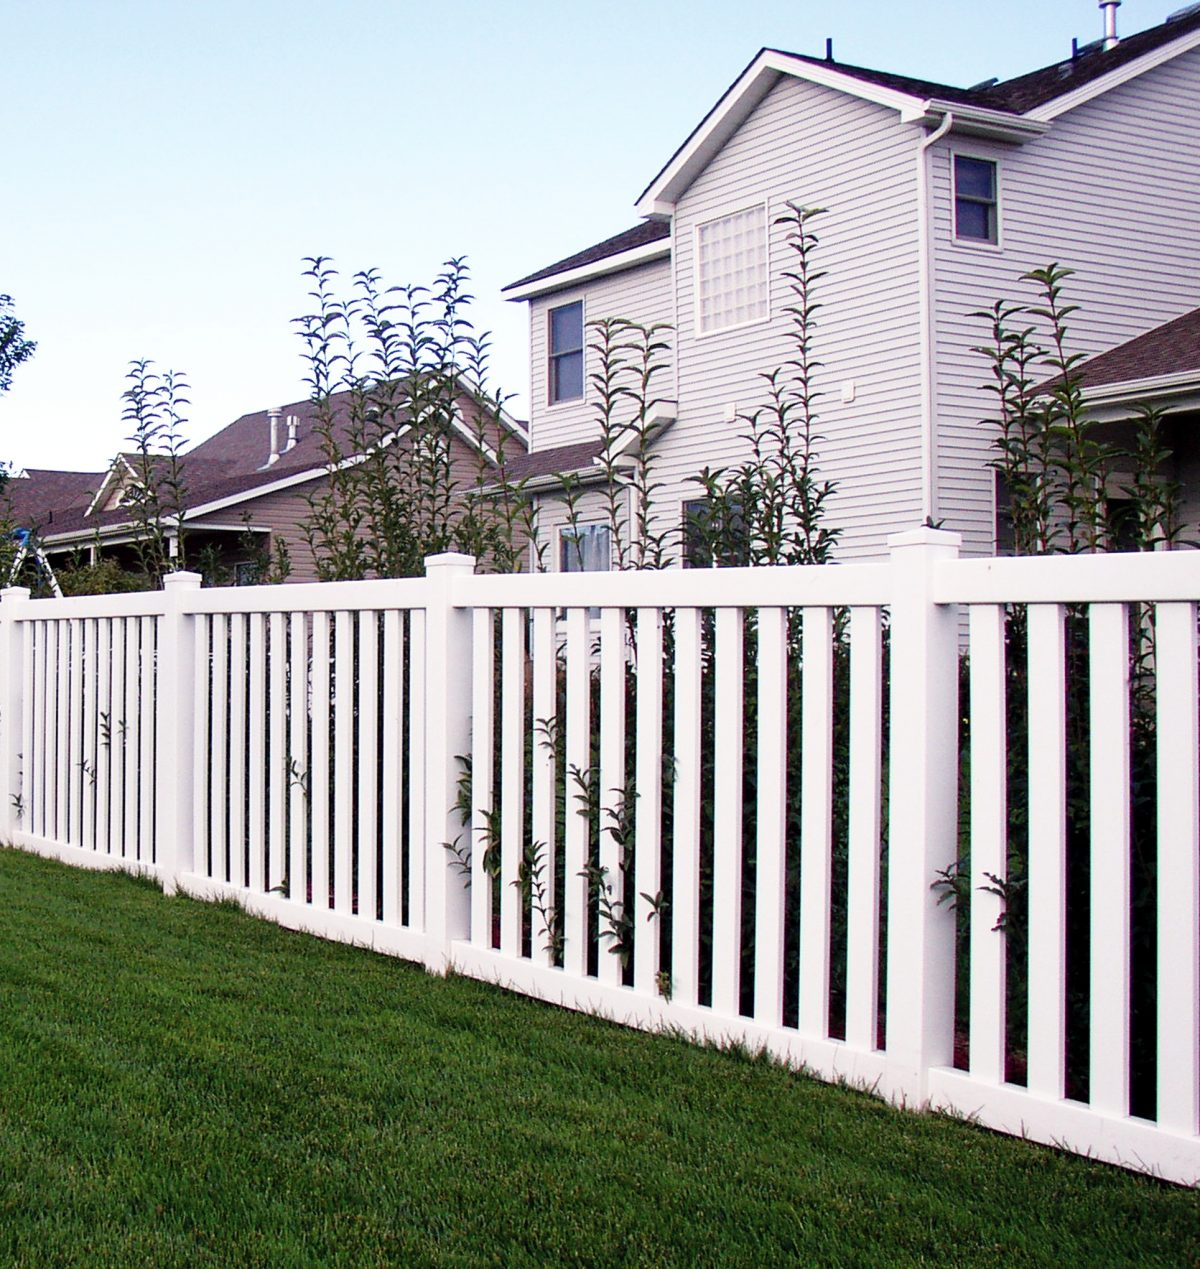 Hannah chose to install a white vinyl fence around her house immediately she came to know about the outstanding features of Duramax fences